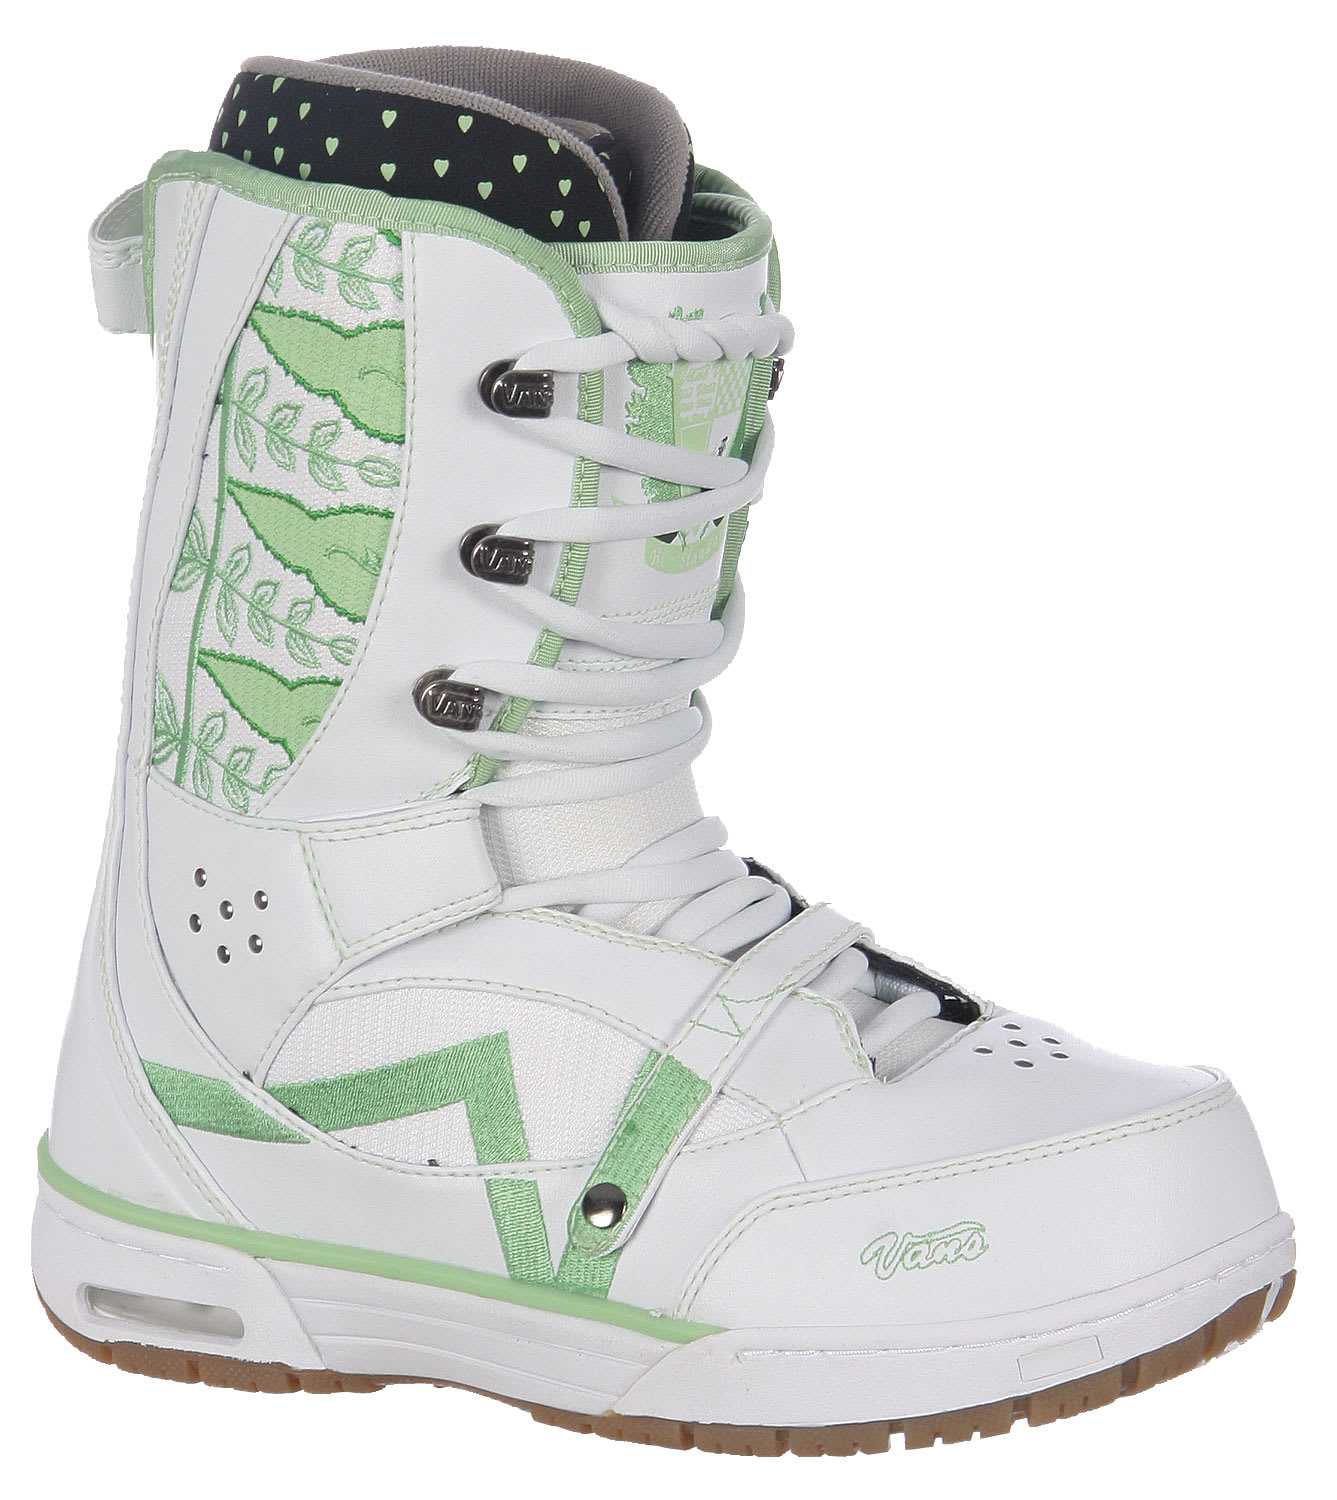 on sale vans hi standard snowboard boots womens up to 80